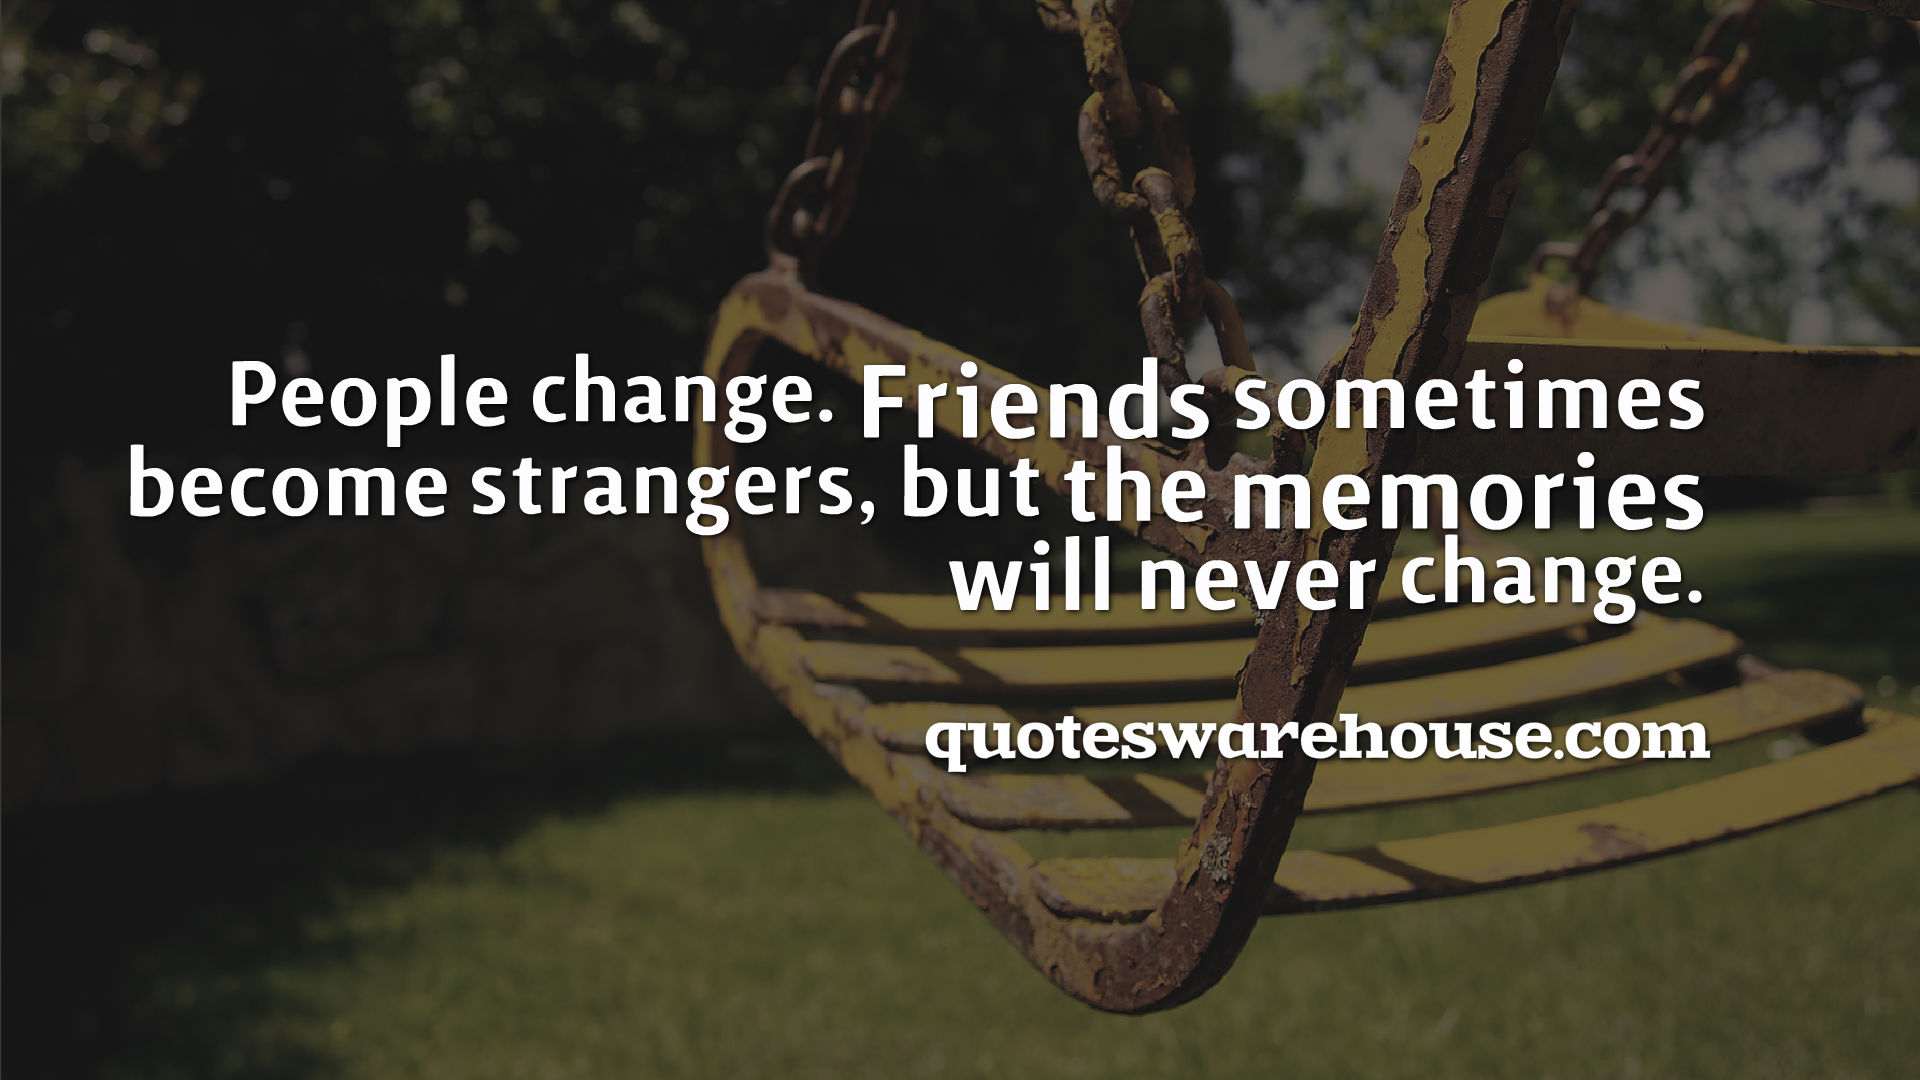 Best Friend Becomes A Stranger Quotes Quotesgram